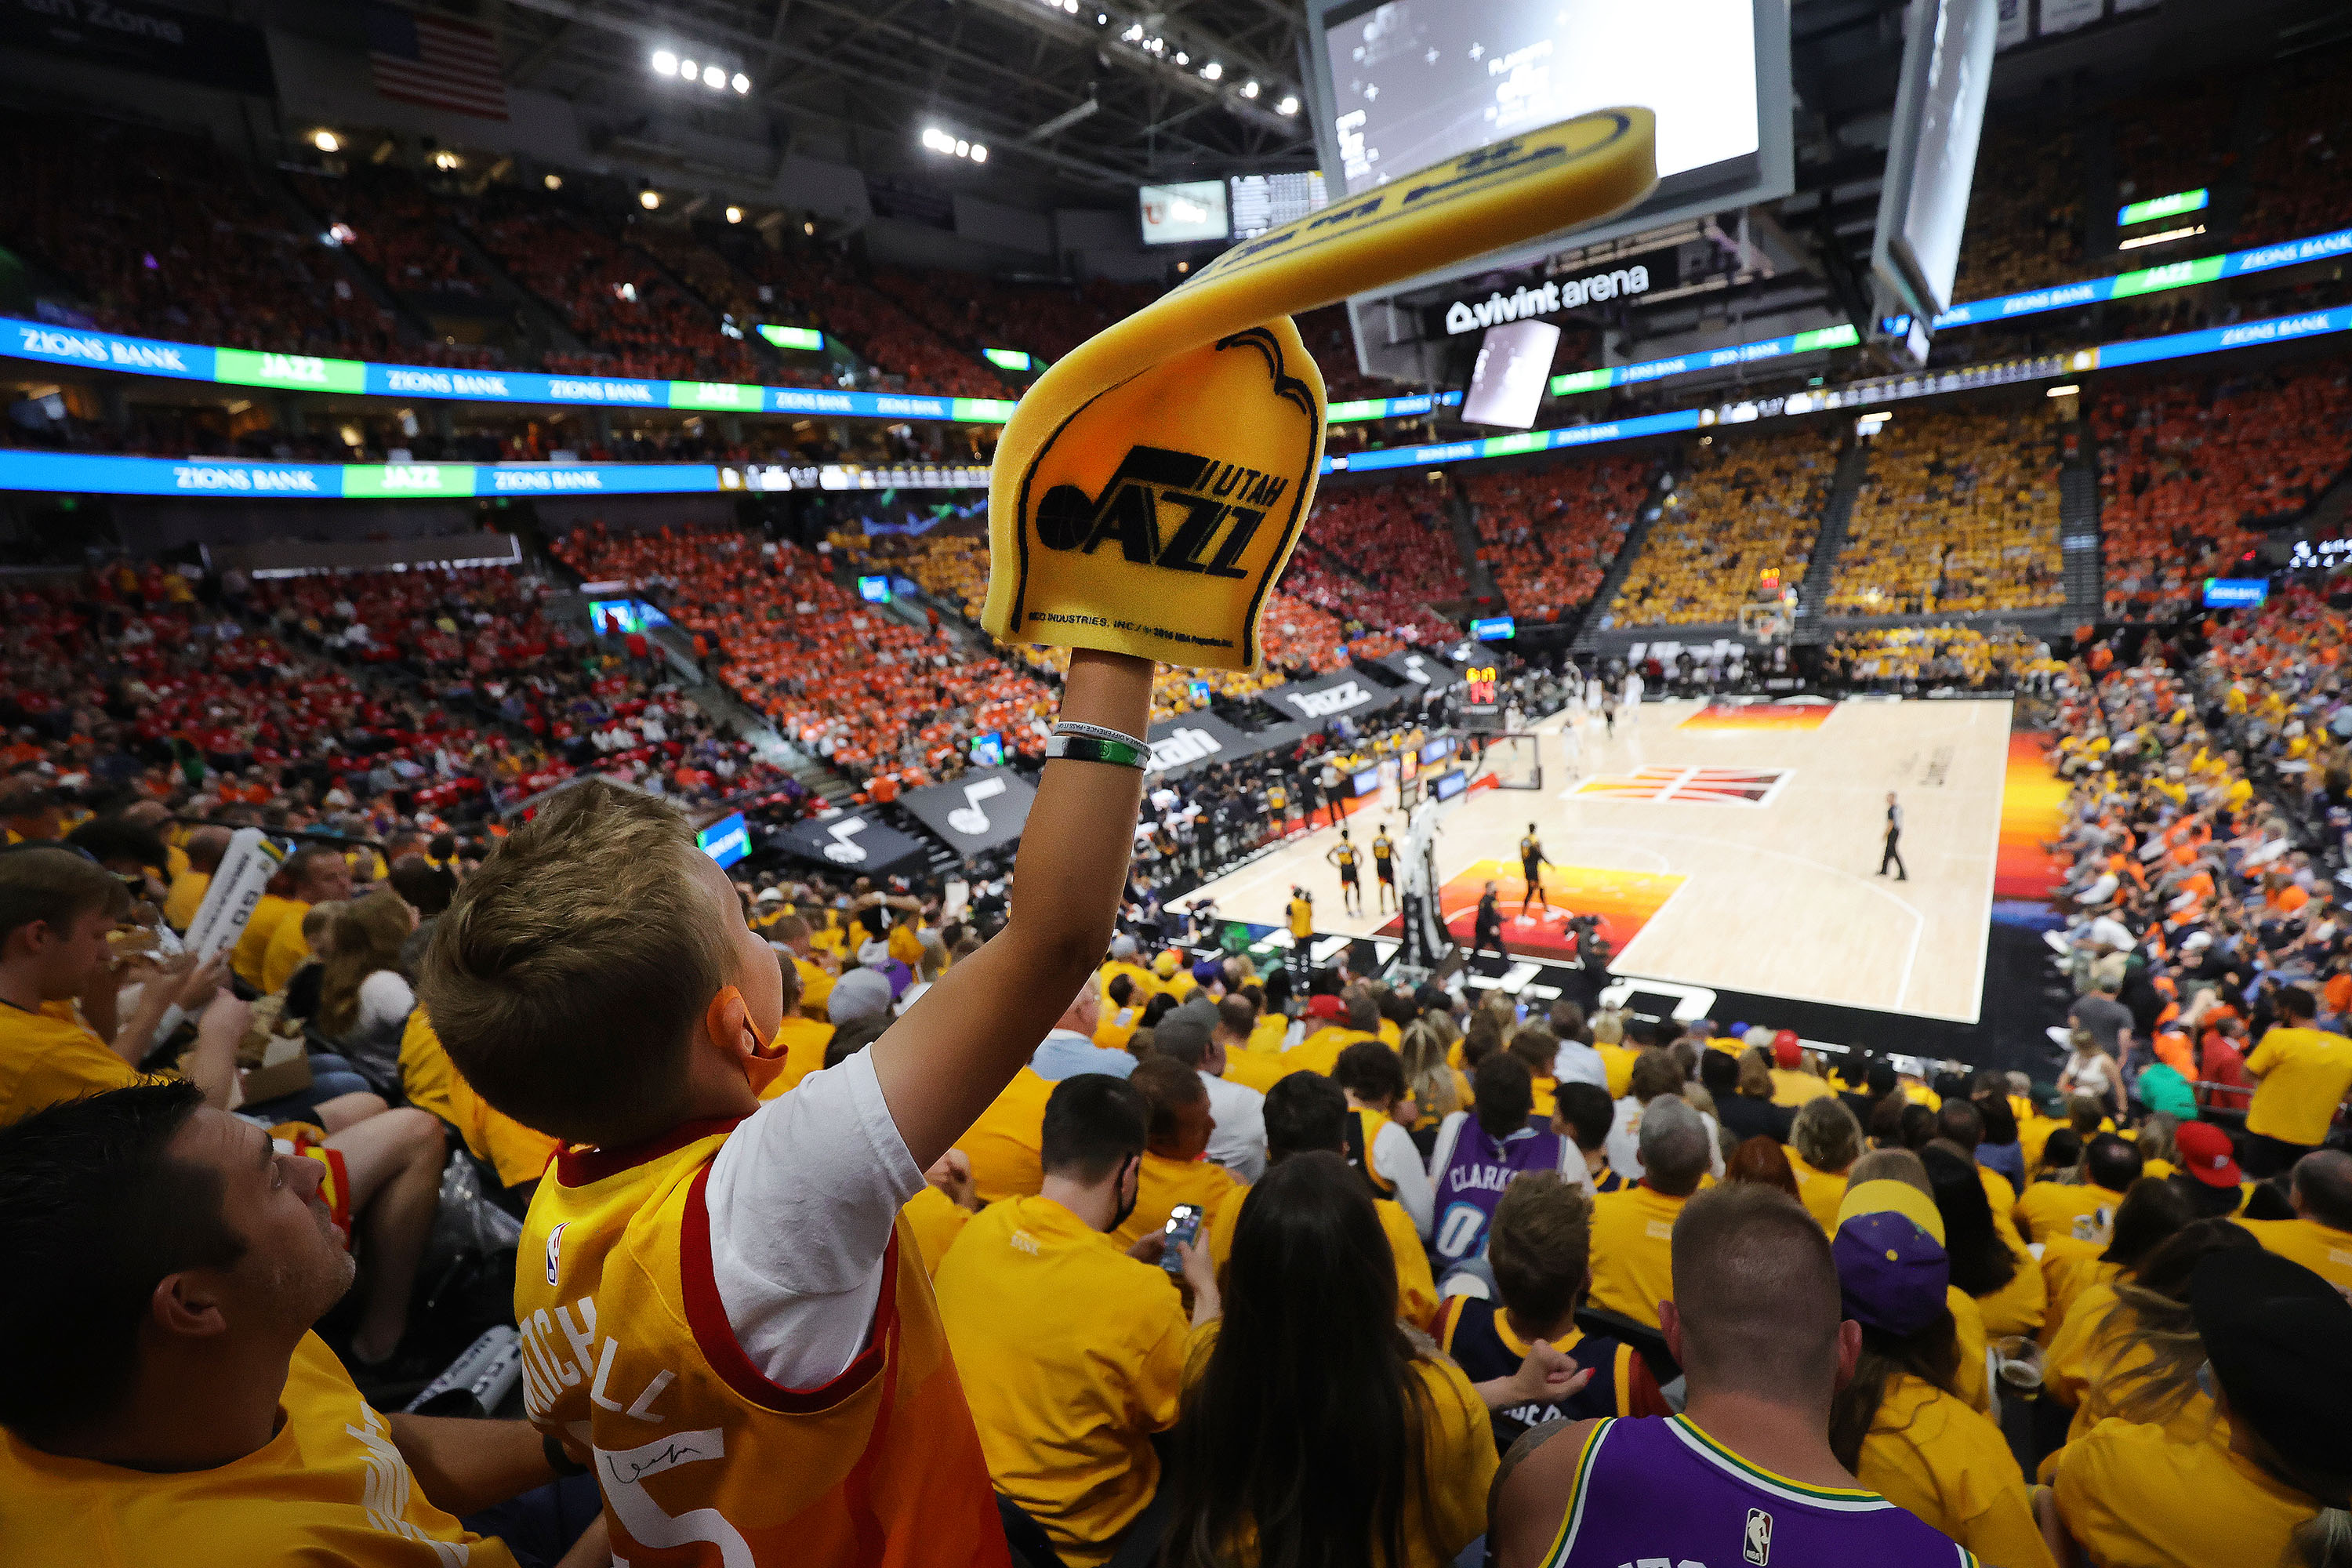 A Utah Jazz fan cheers during the NBA playoffs in Salt Lake City on Thursday, June 10, 2021. The Jazz won 117-111.